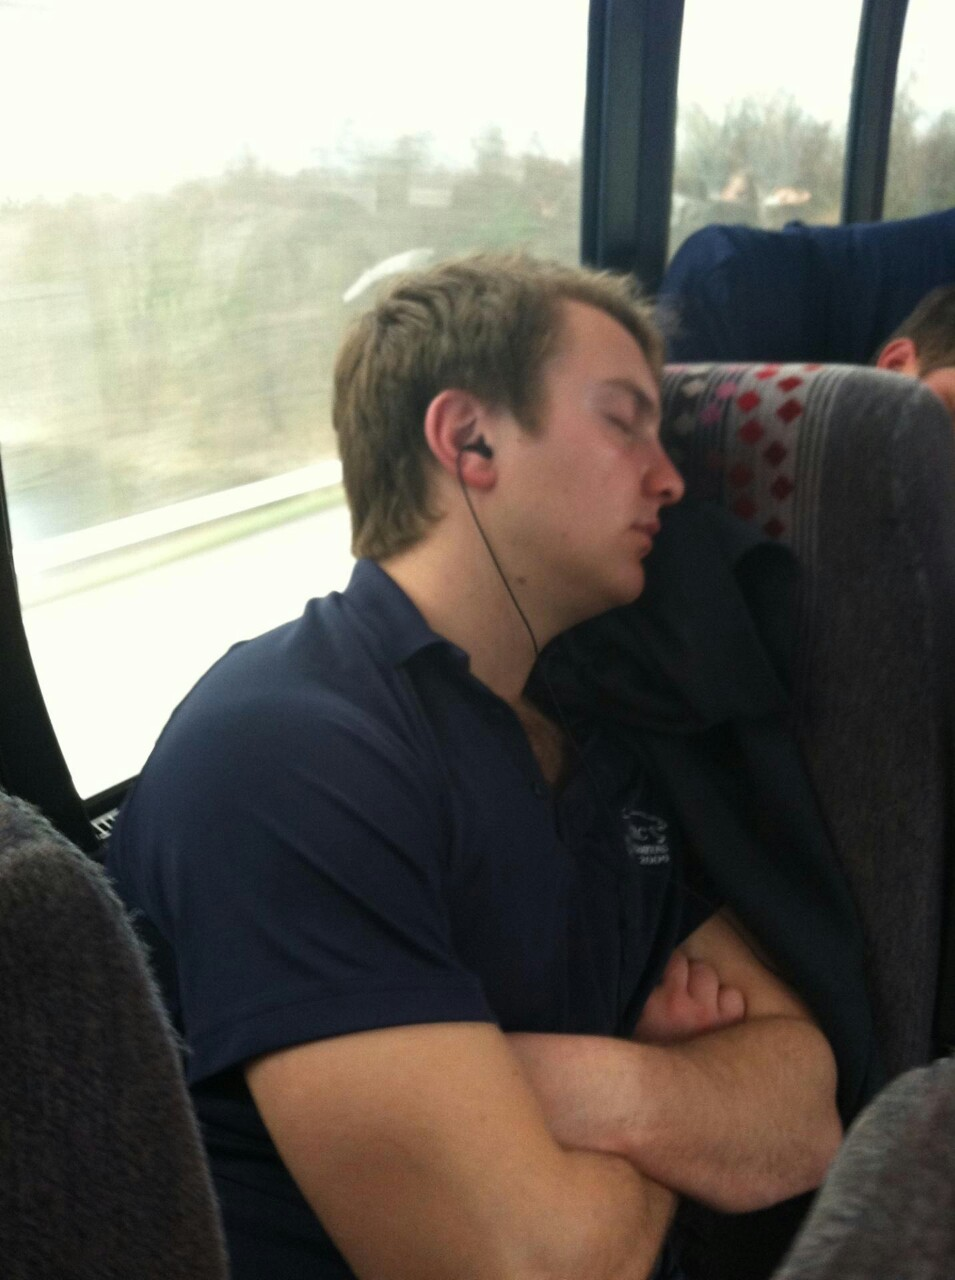 Former captain Bri-guy the Tri-guy traveling with @themcrc on their way to Nationals!